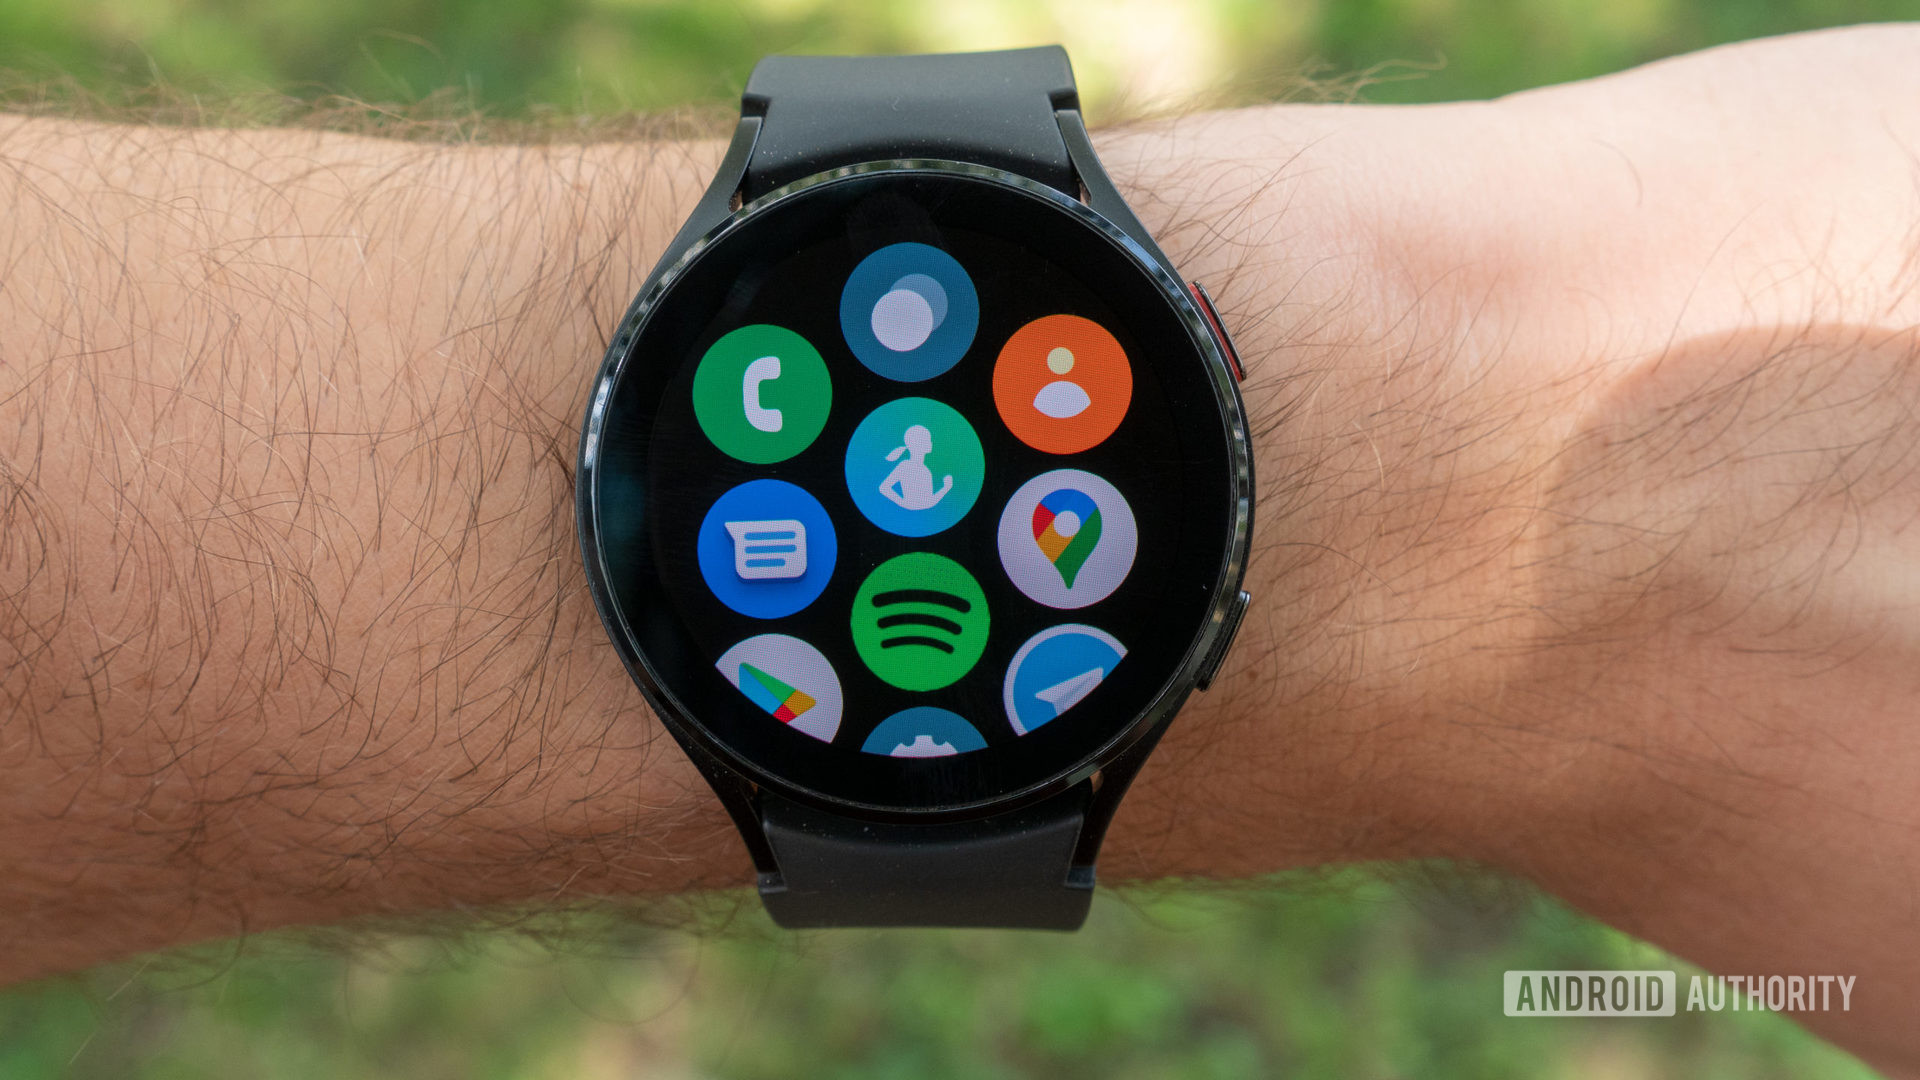 The Samsung Galaxy Watch 4 on a man's wrist showing the all-apps page.